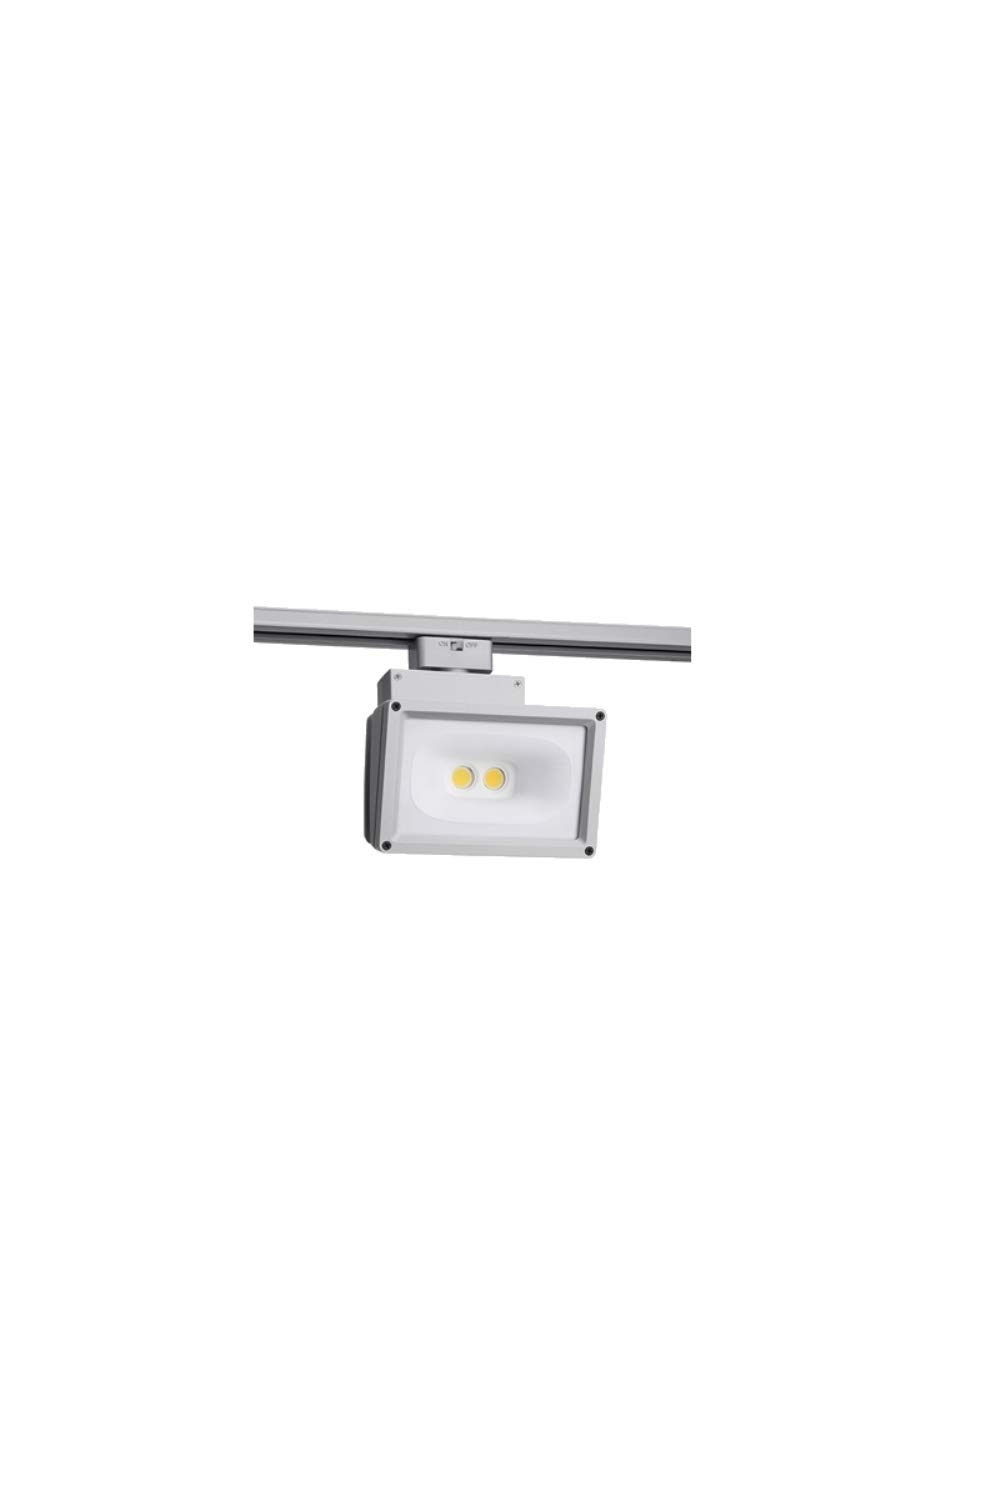 Juno Trac-Master 41W LED Wall Wash/Flood Track Head, White, T259L by Juno Lighting Group (Image #1)